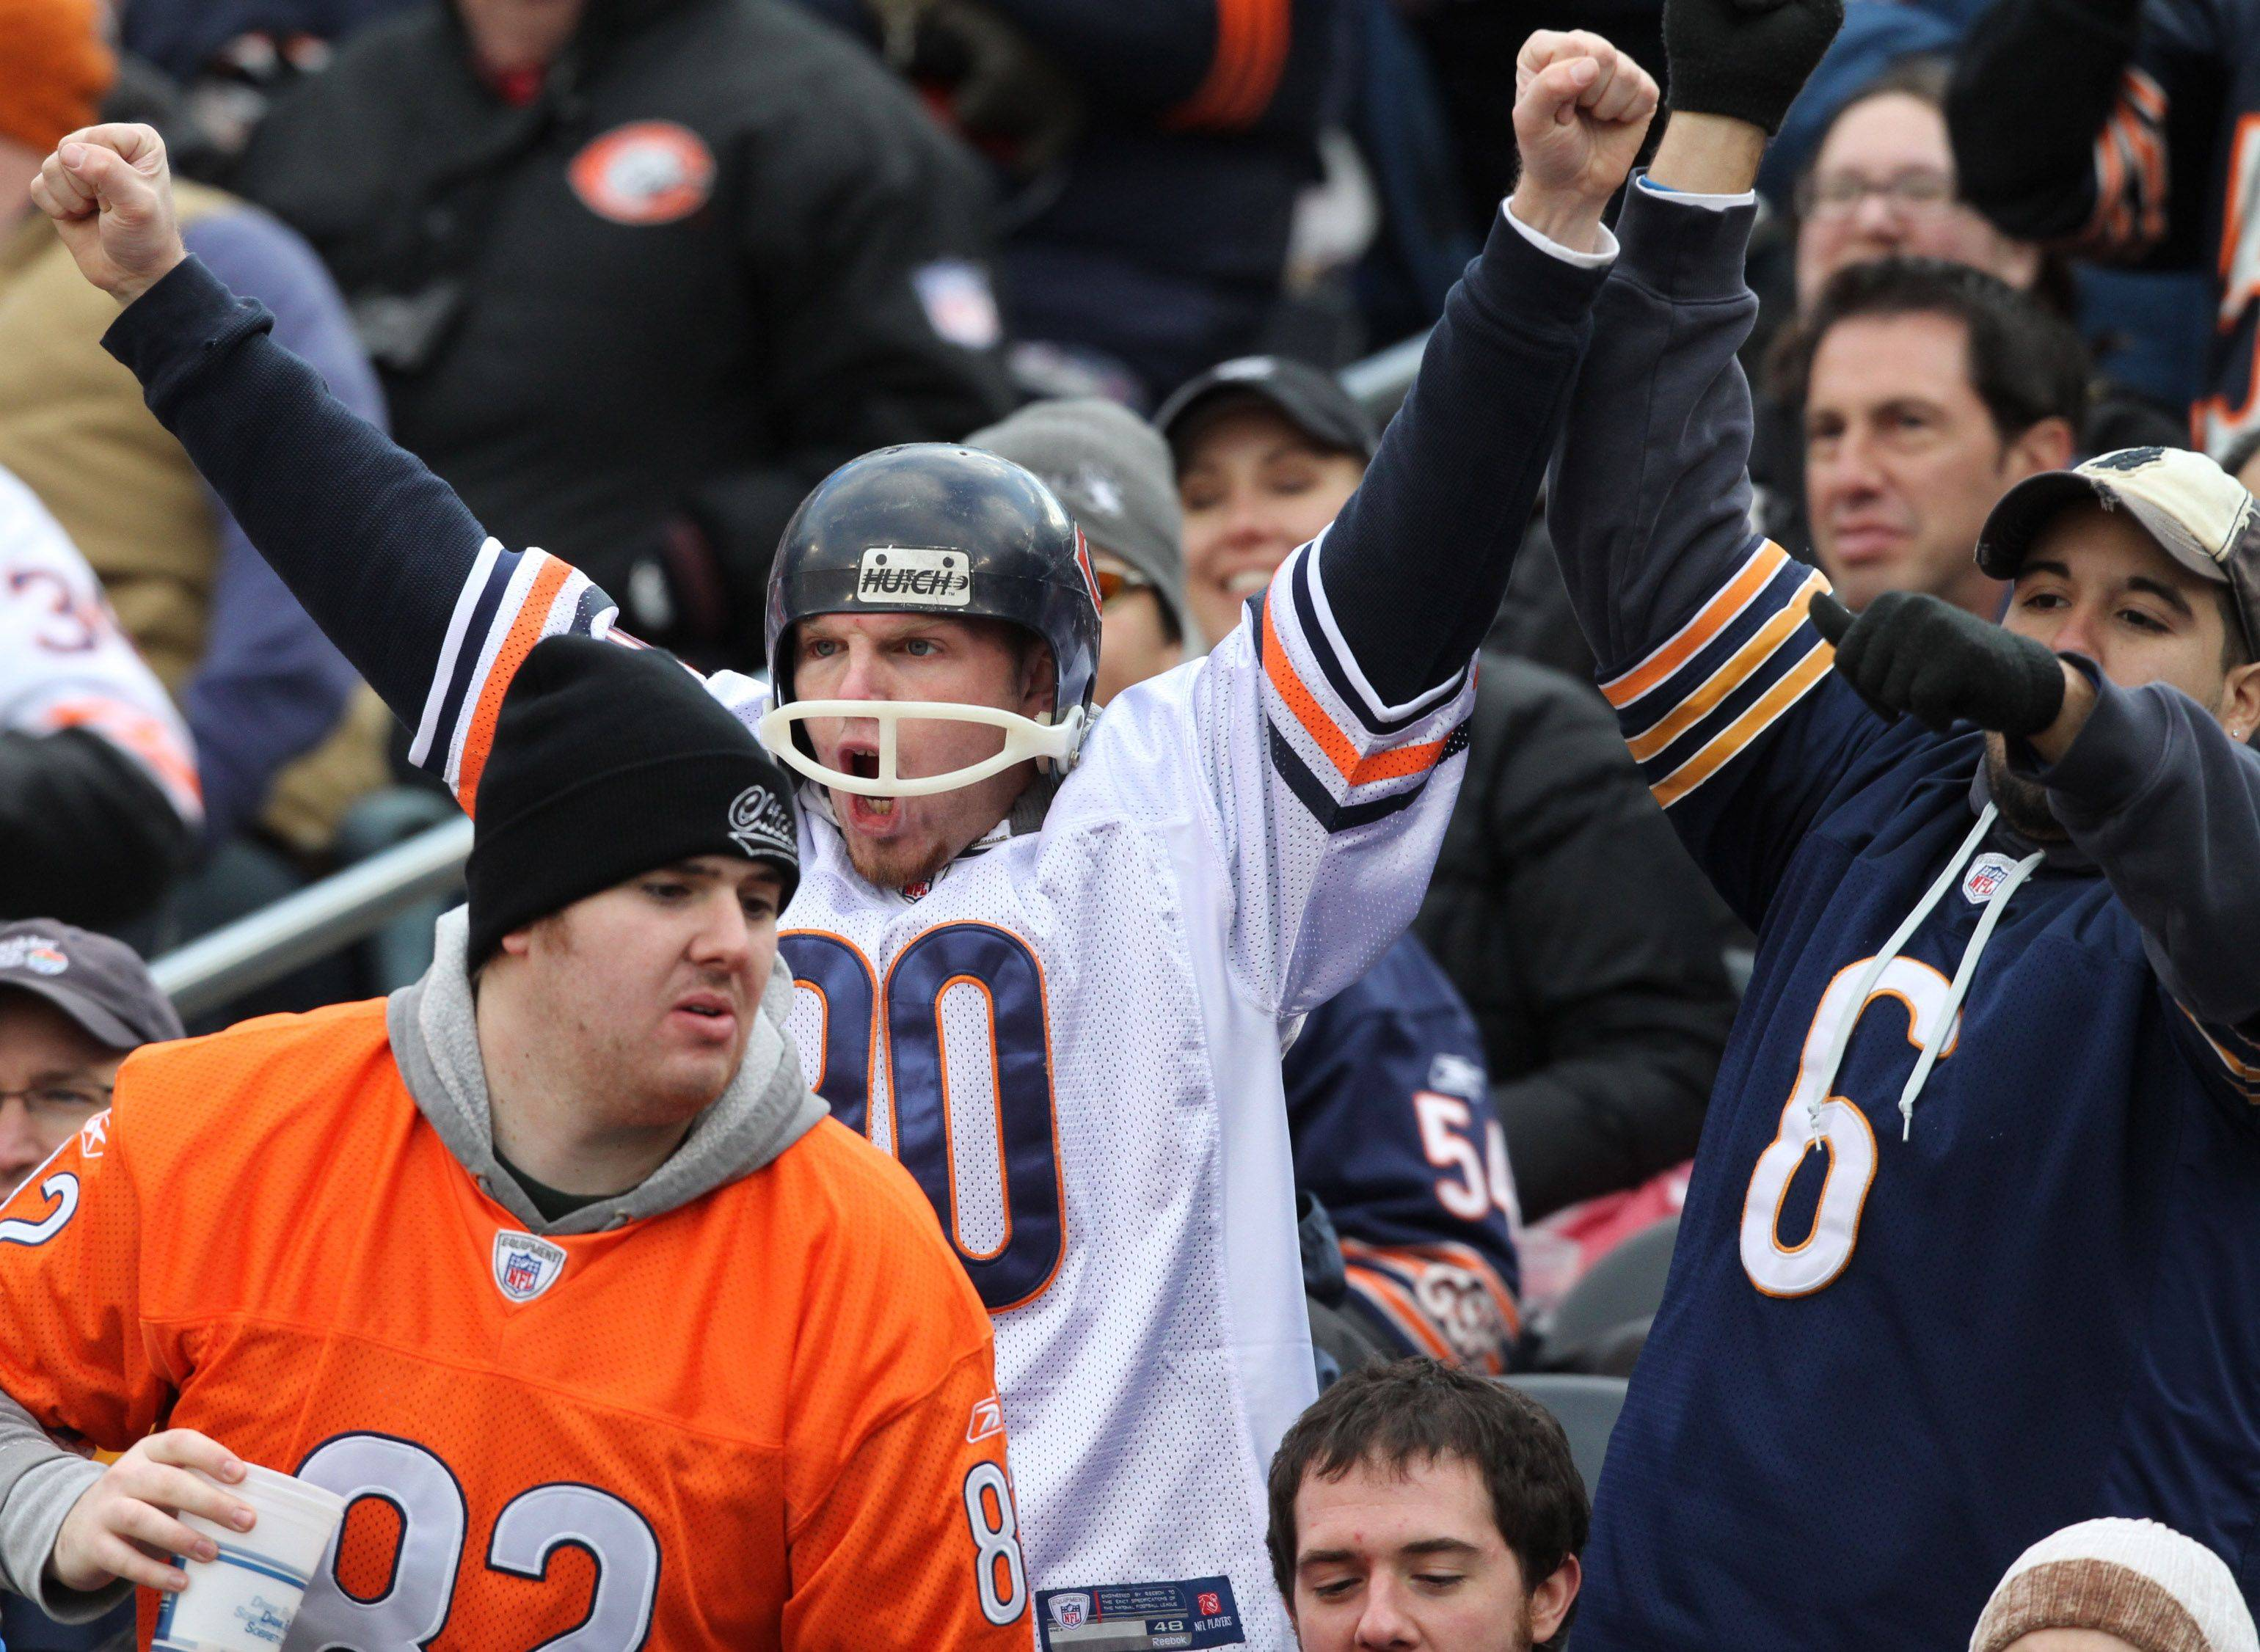 Chicago Bears fans celebrate a touchdown against Minnesota Vikings.